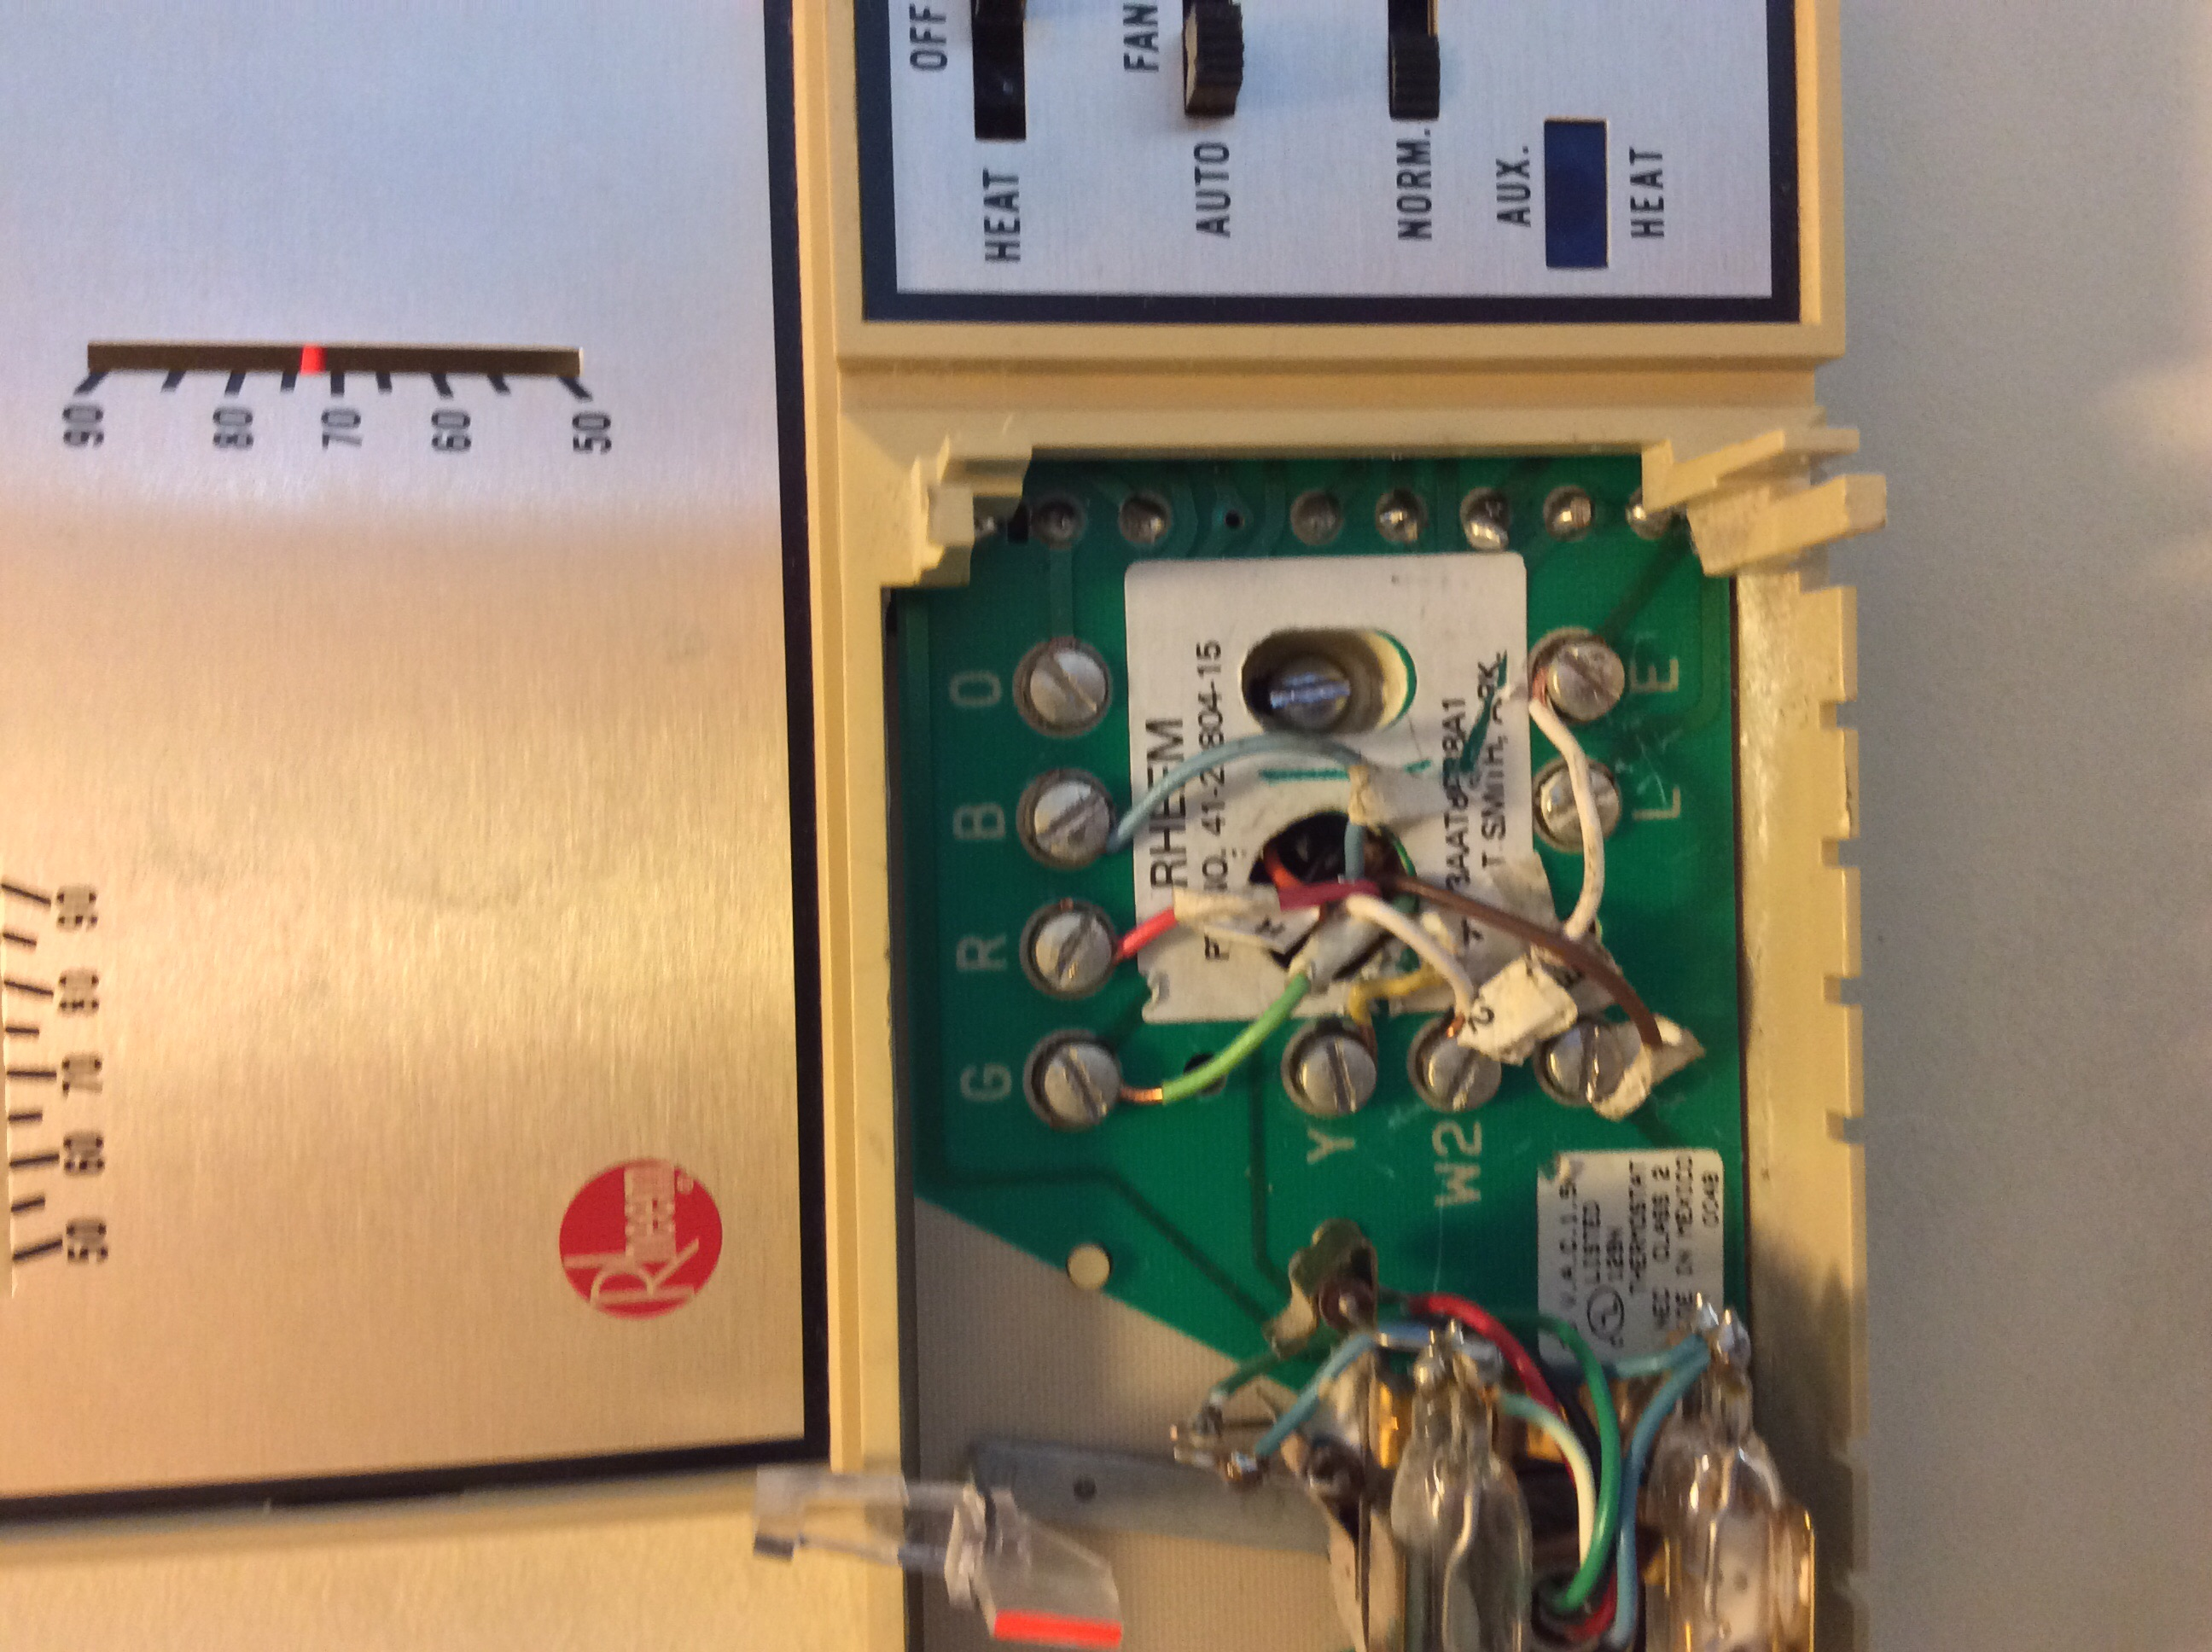 I Am Replacing A Rheem Thermostat With Honeywell Rth6500wifi Wiring Image